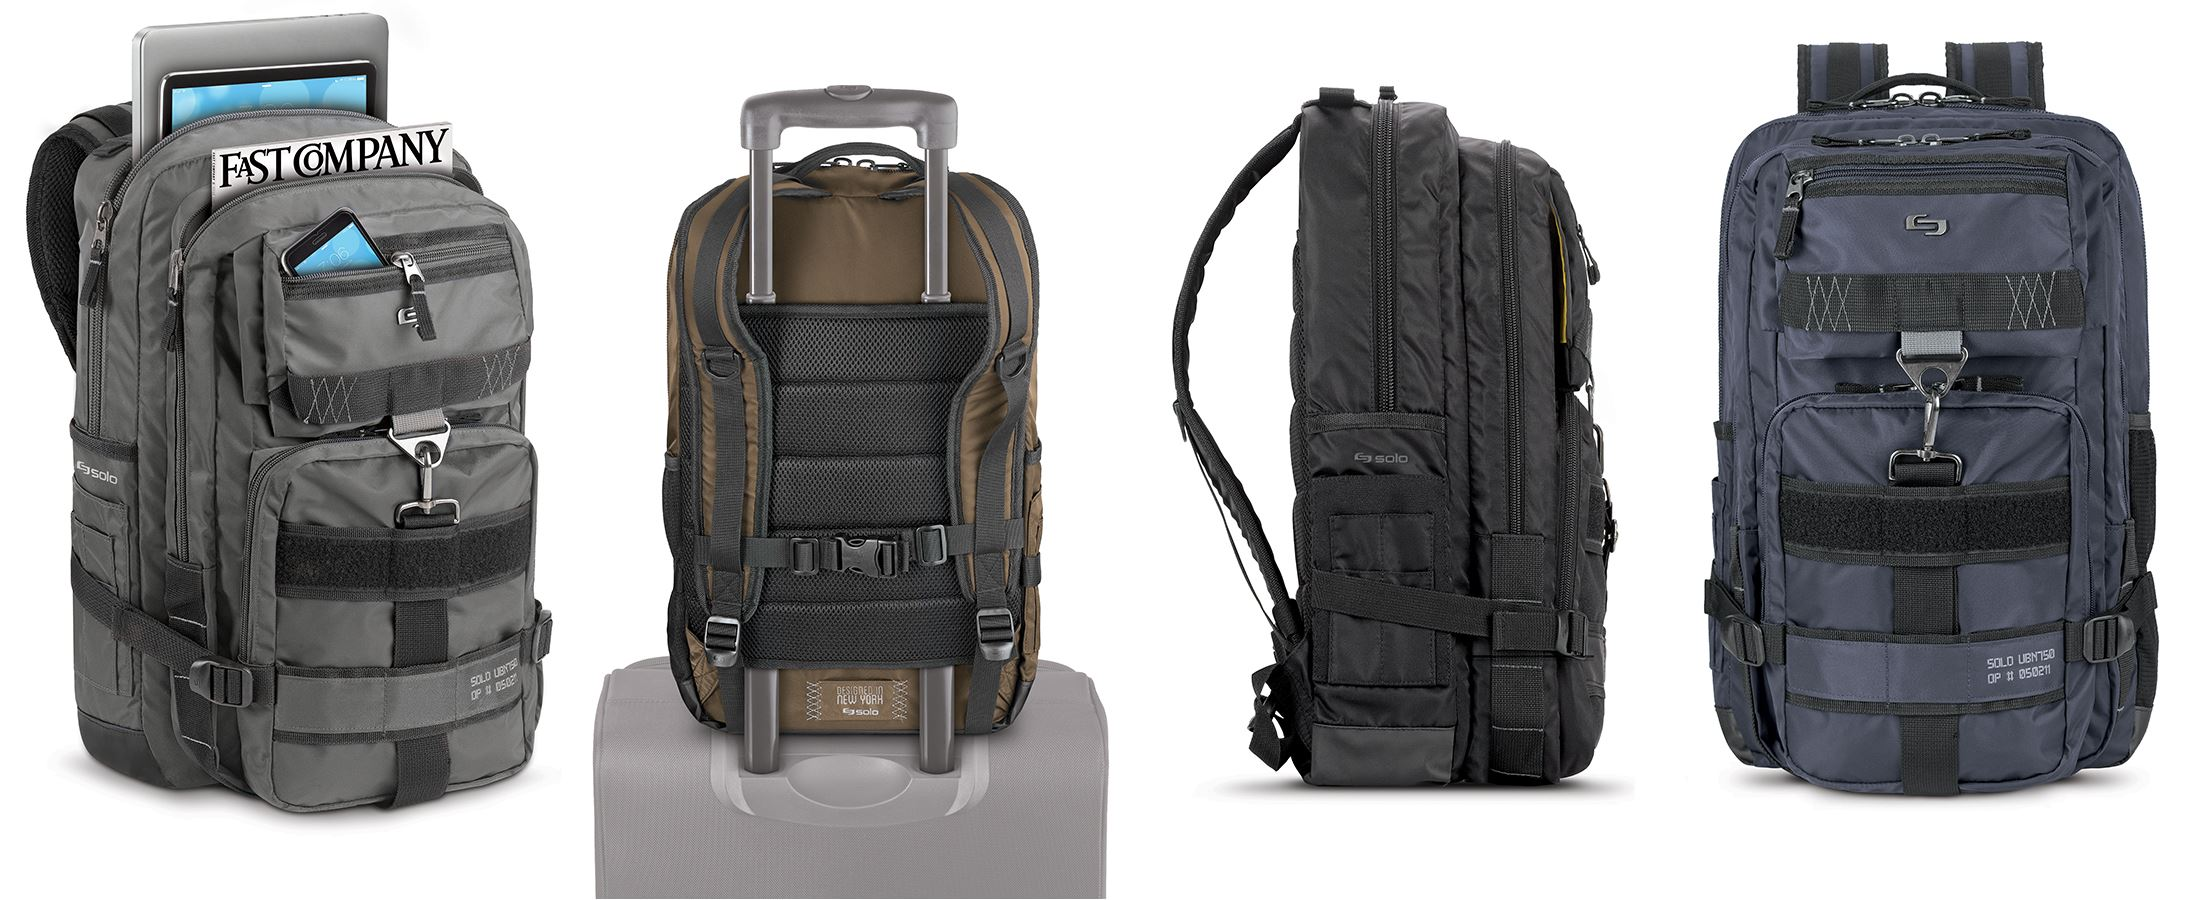 Solo Backpack Designed In New York